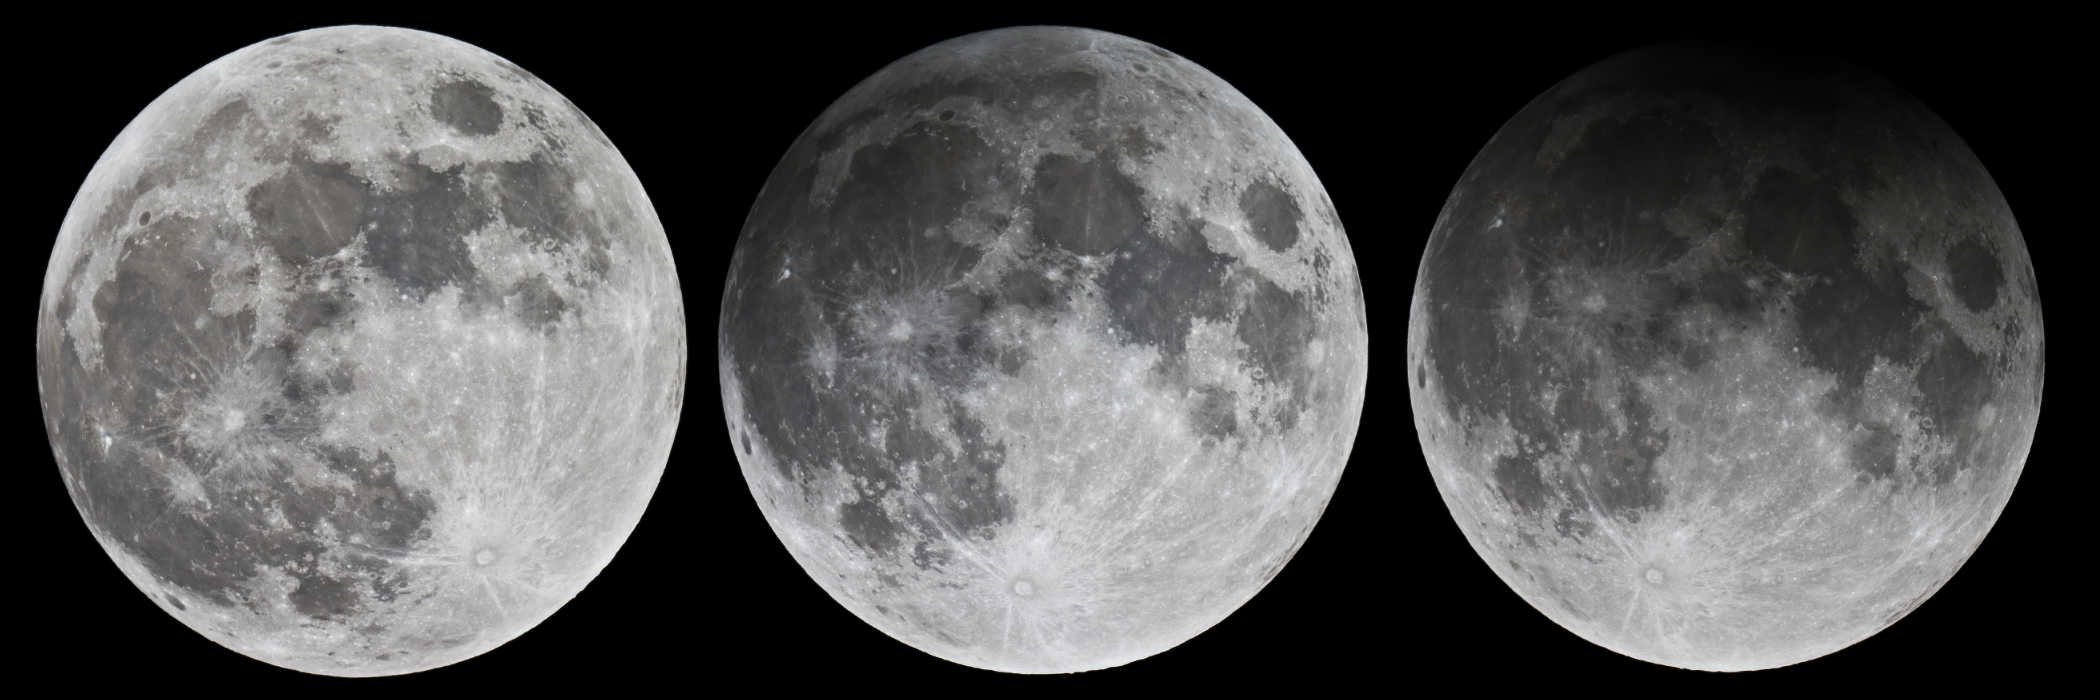 11lut17_Moon.png